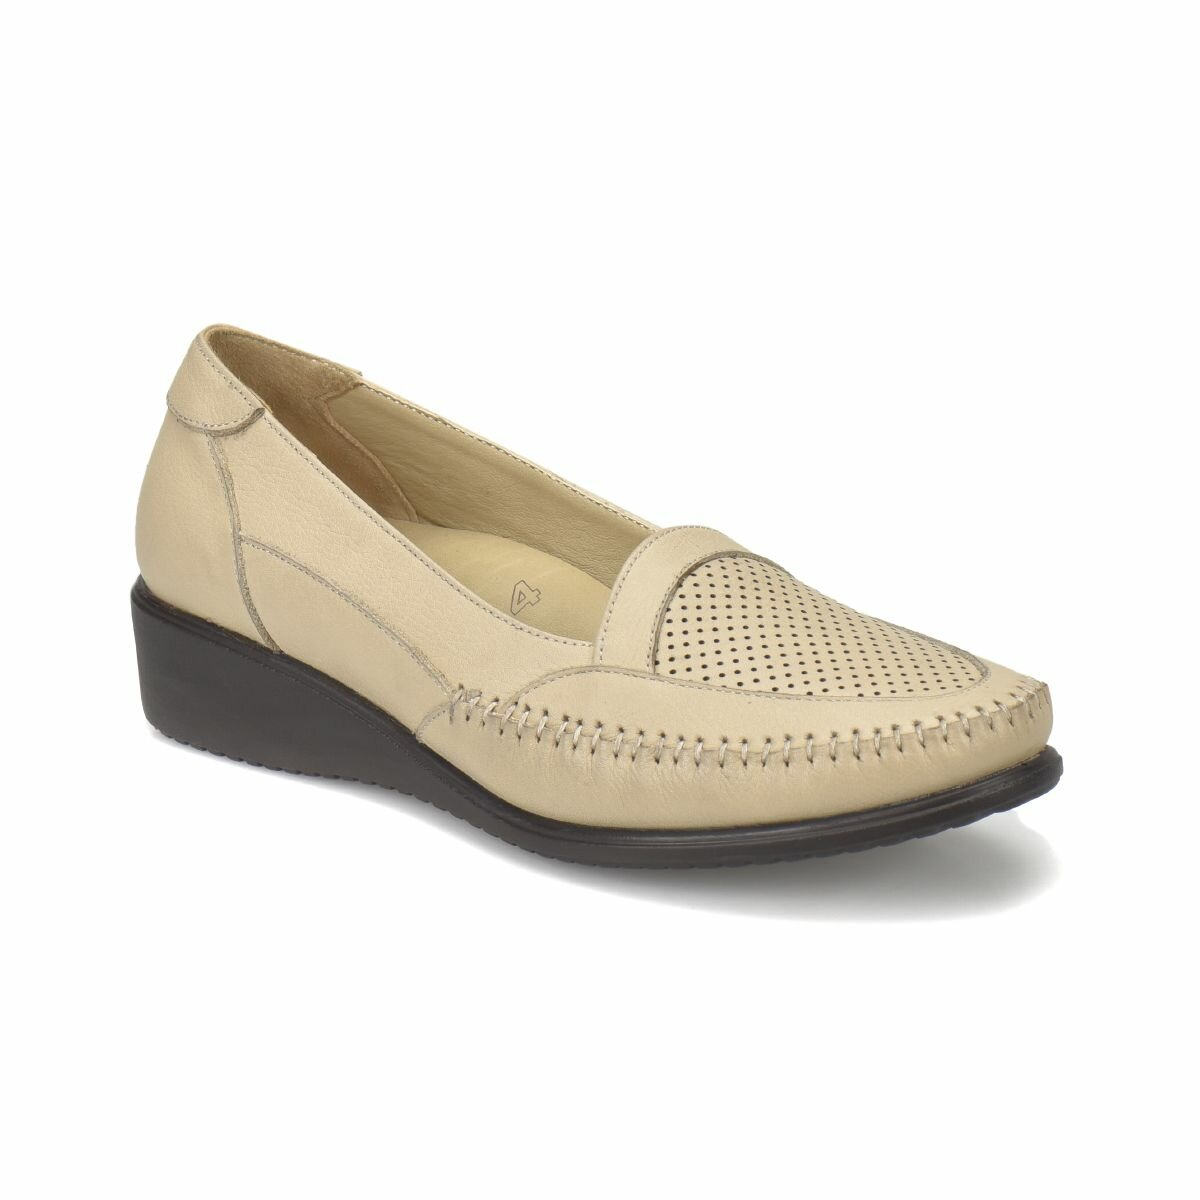 FLO 81. 111127.Z Beige Women 'S Shoes Polaris 5 Point